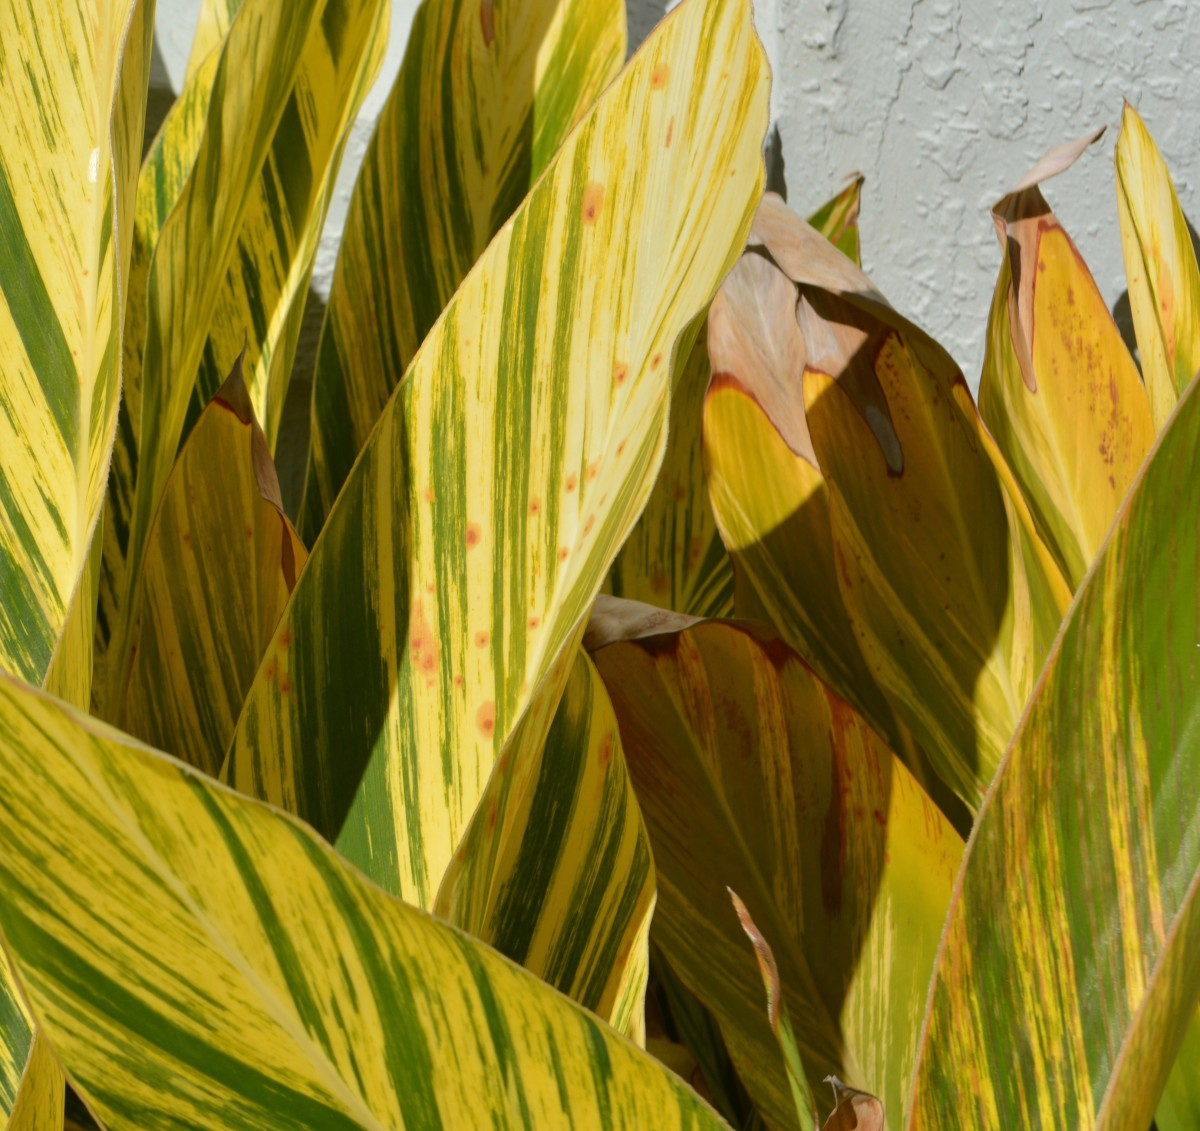 The brown leaf tips and spots typical of drought conditions